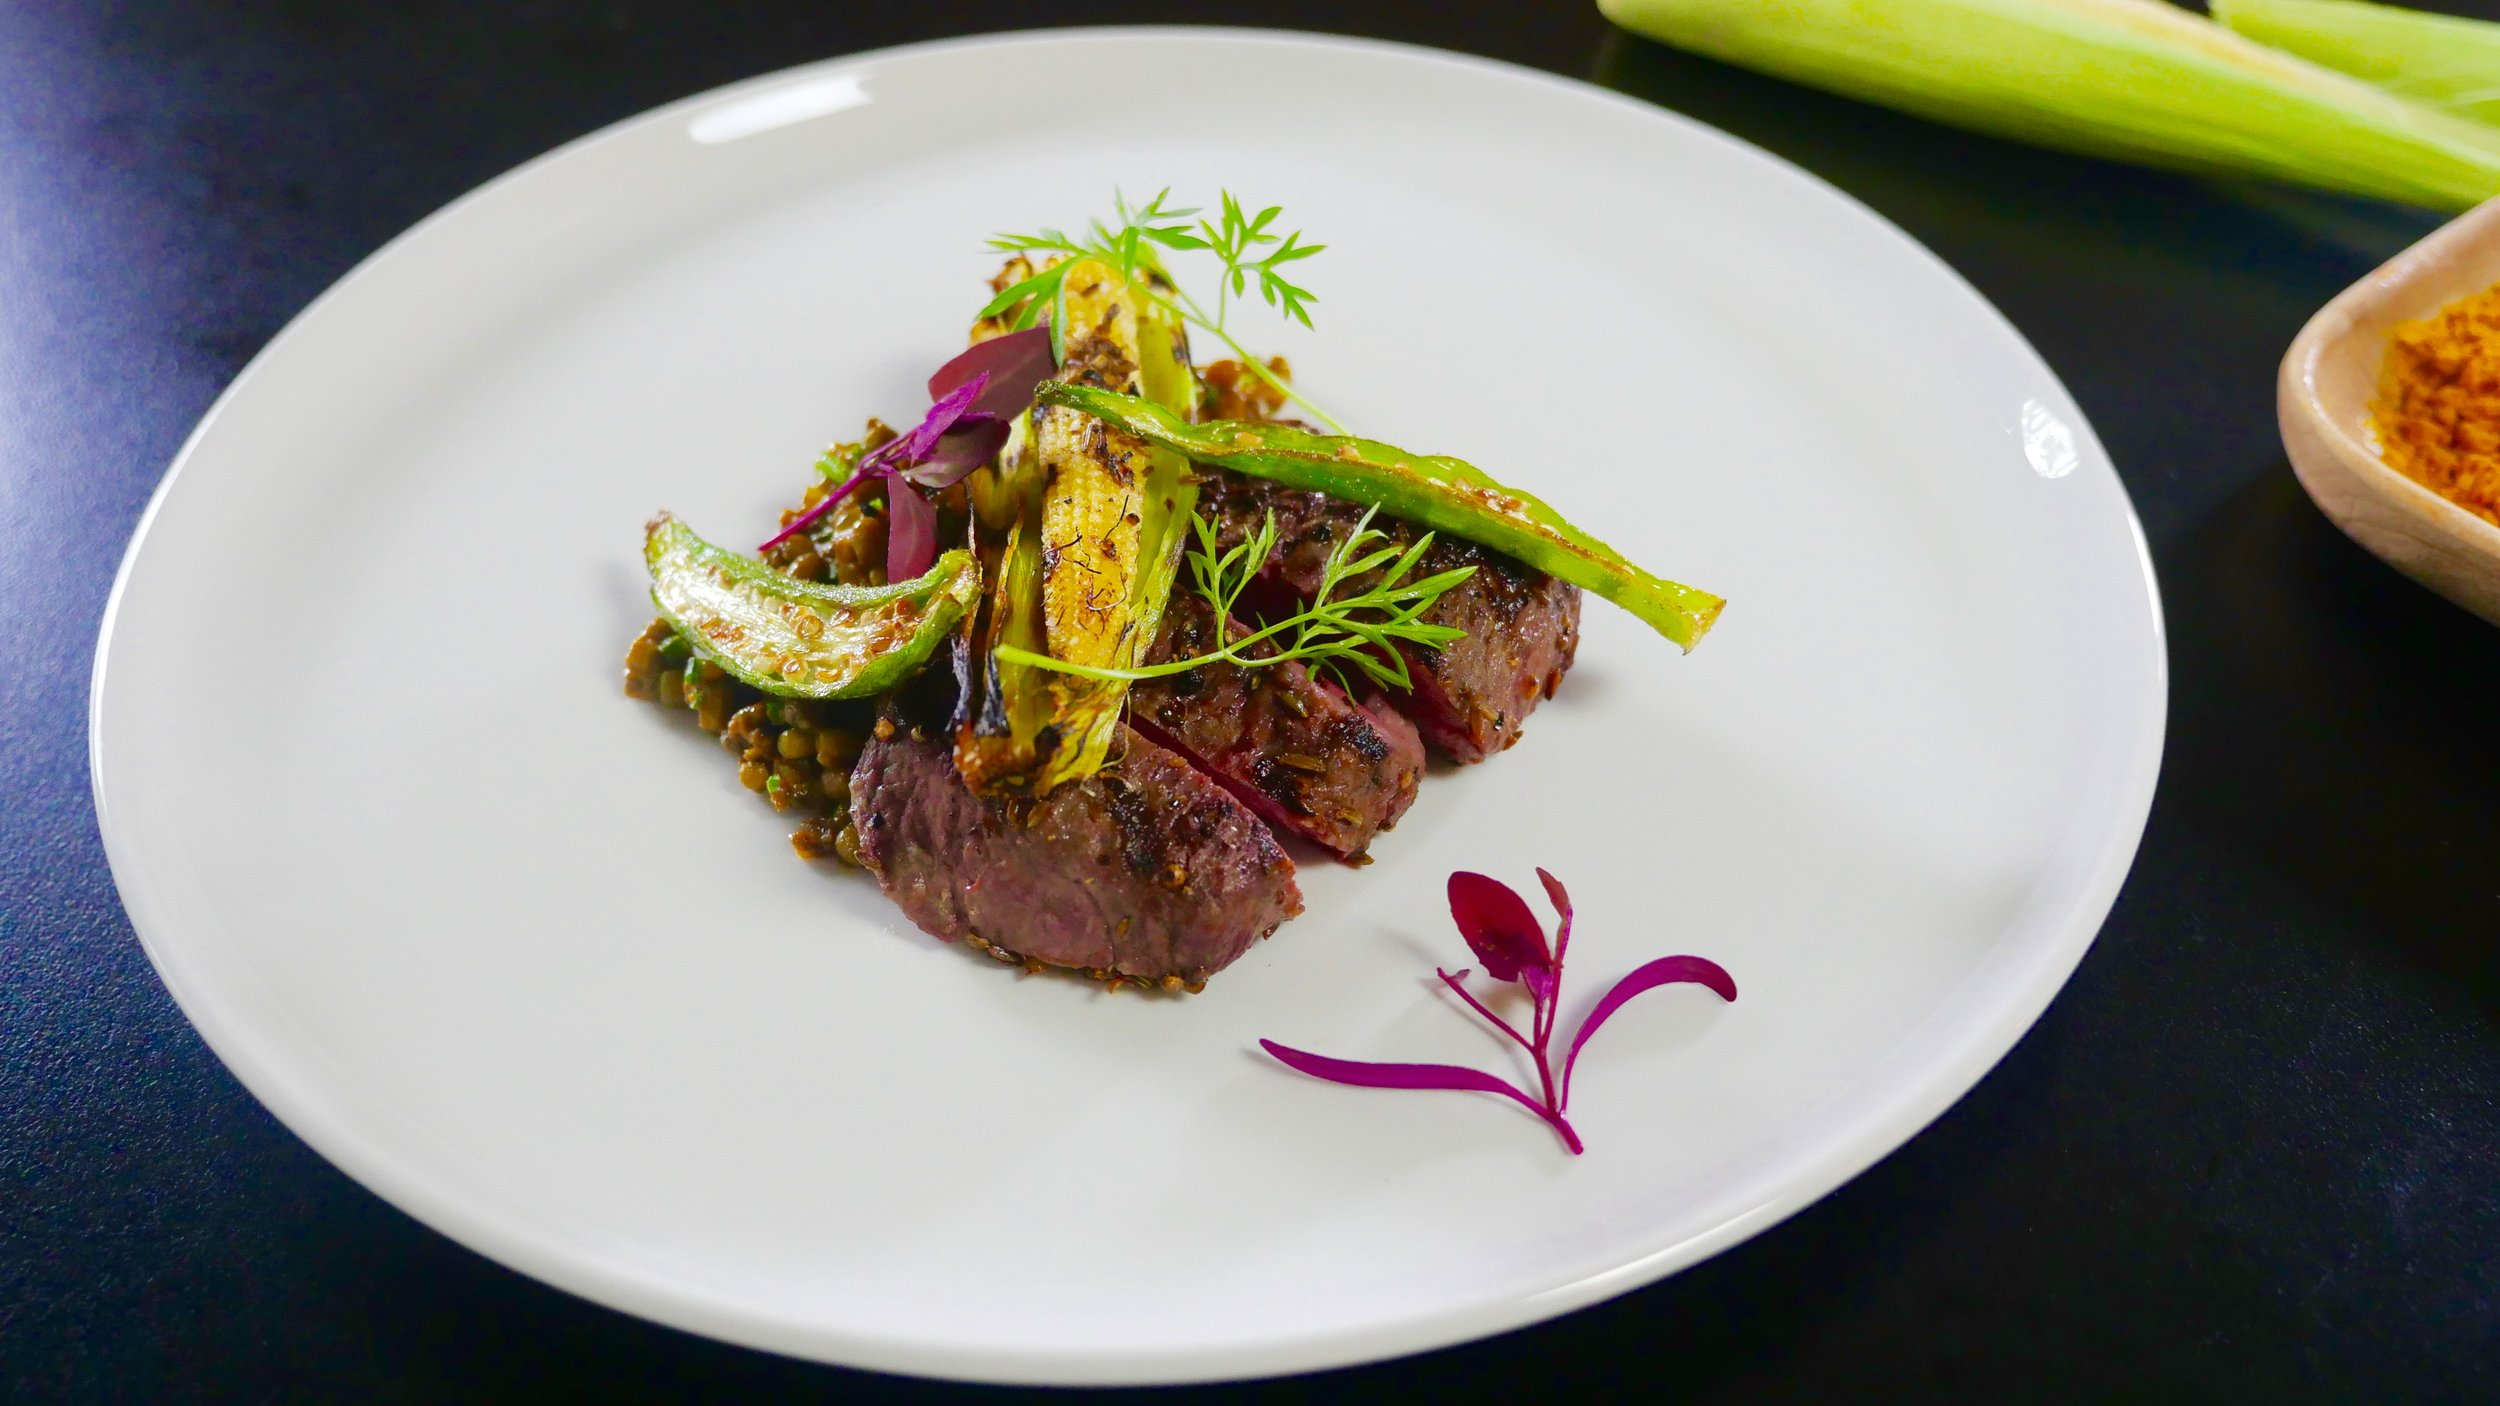 WHOLE SPICE CRUSTED LAMB LOIN, MUNG DAL, BABY CORN IN HUSK AND ORACH MICRO HERB.